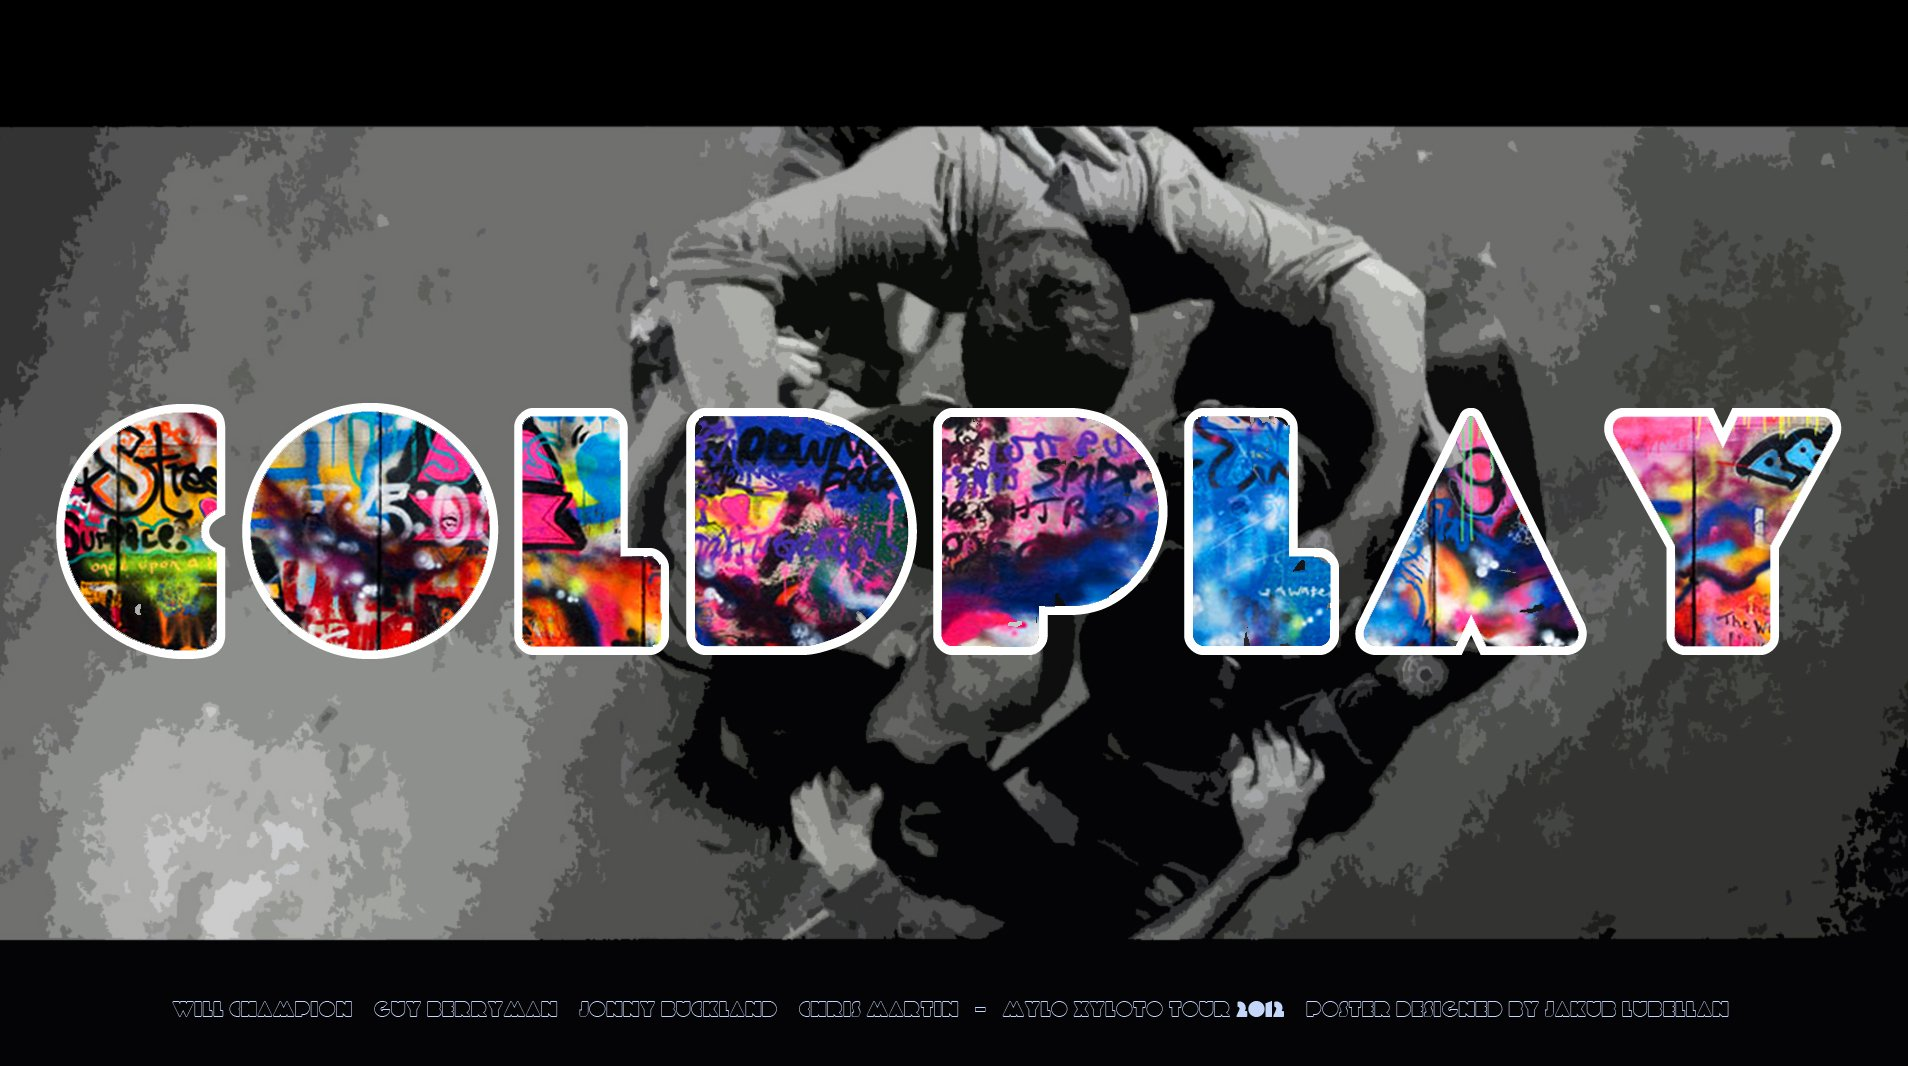 coldplay god put a smile upon your face fond ecran pute